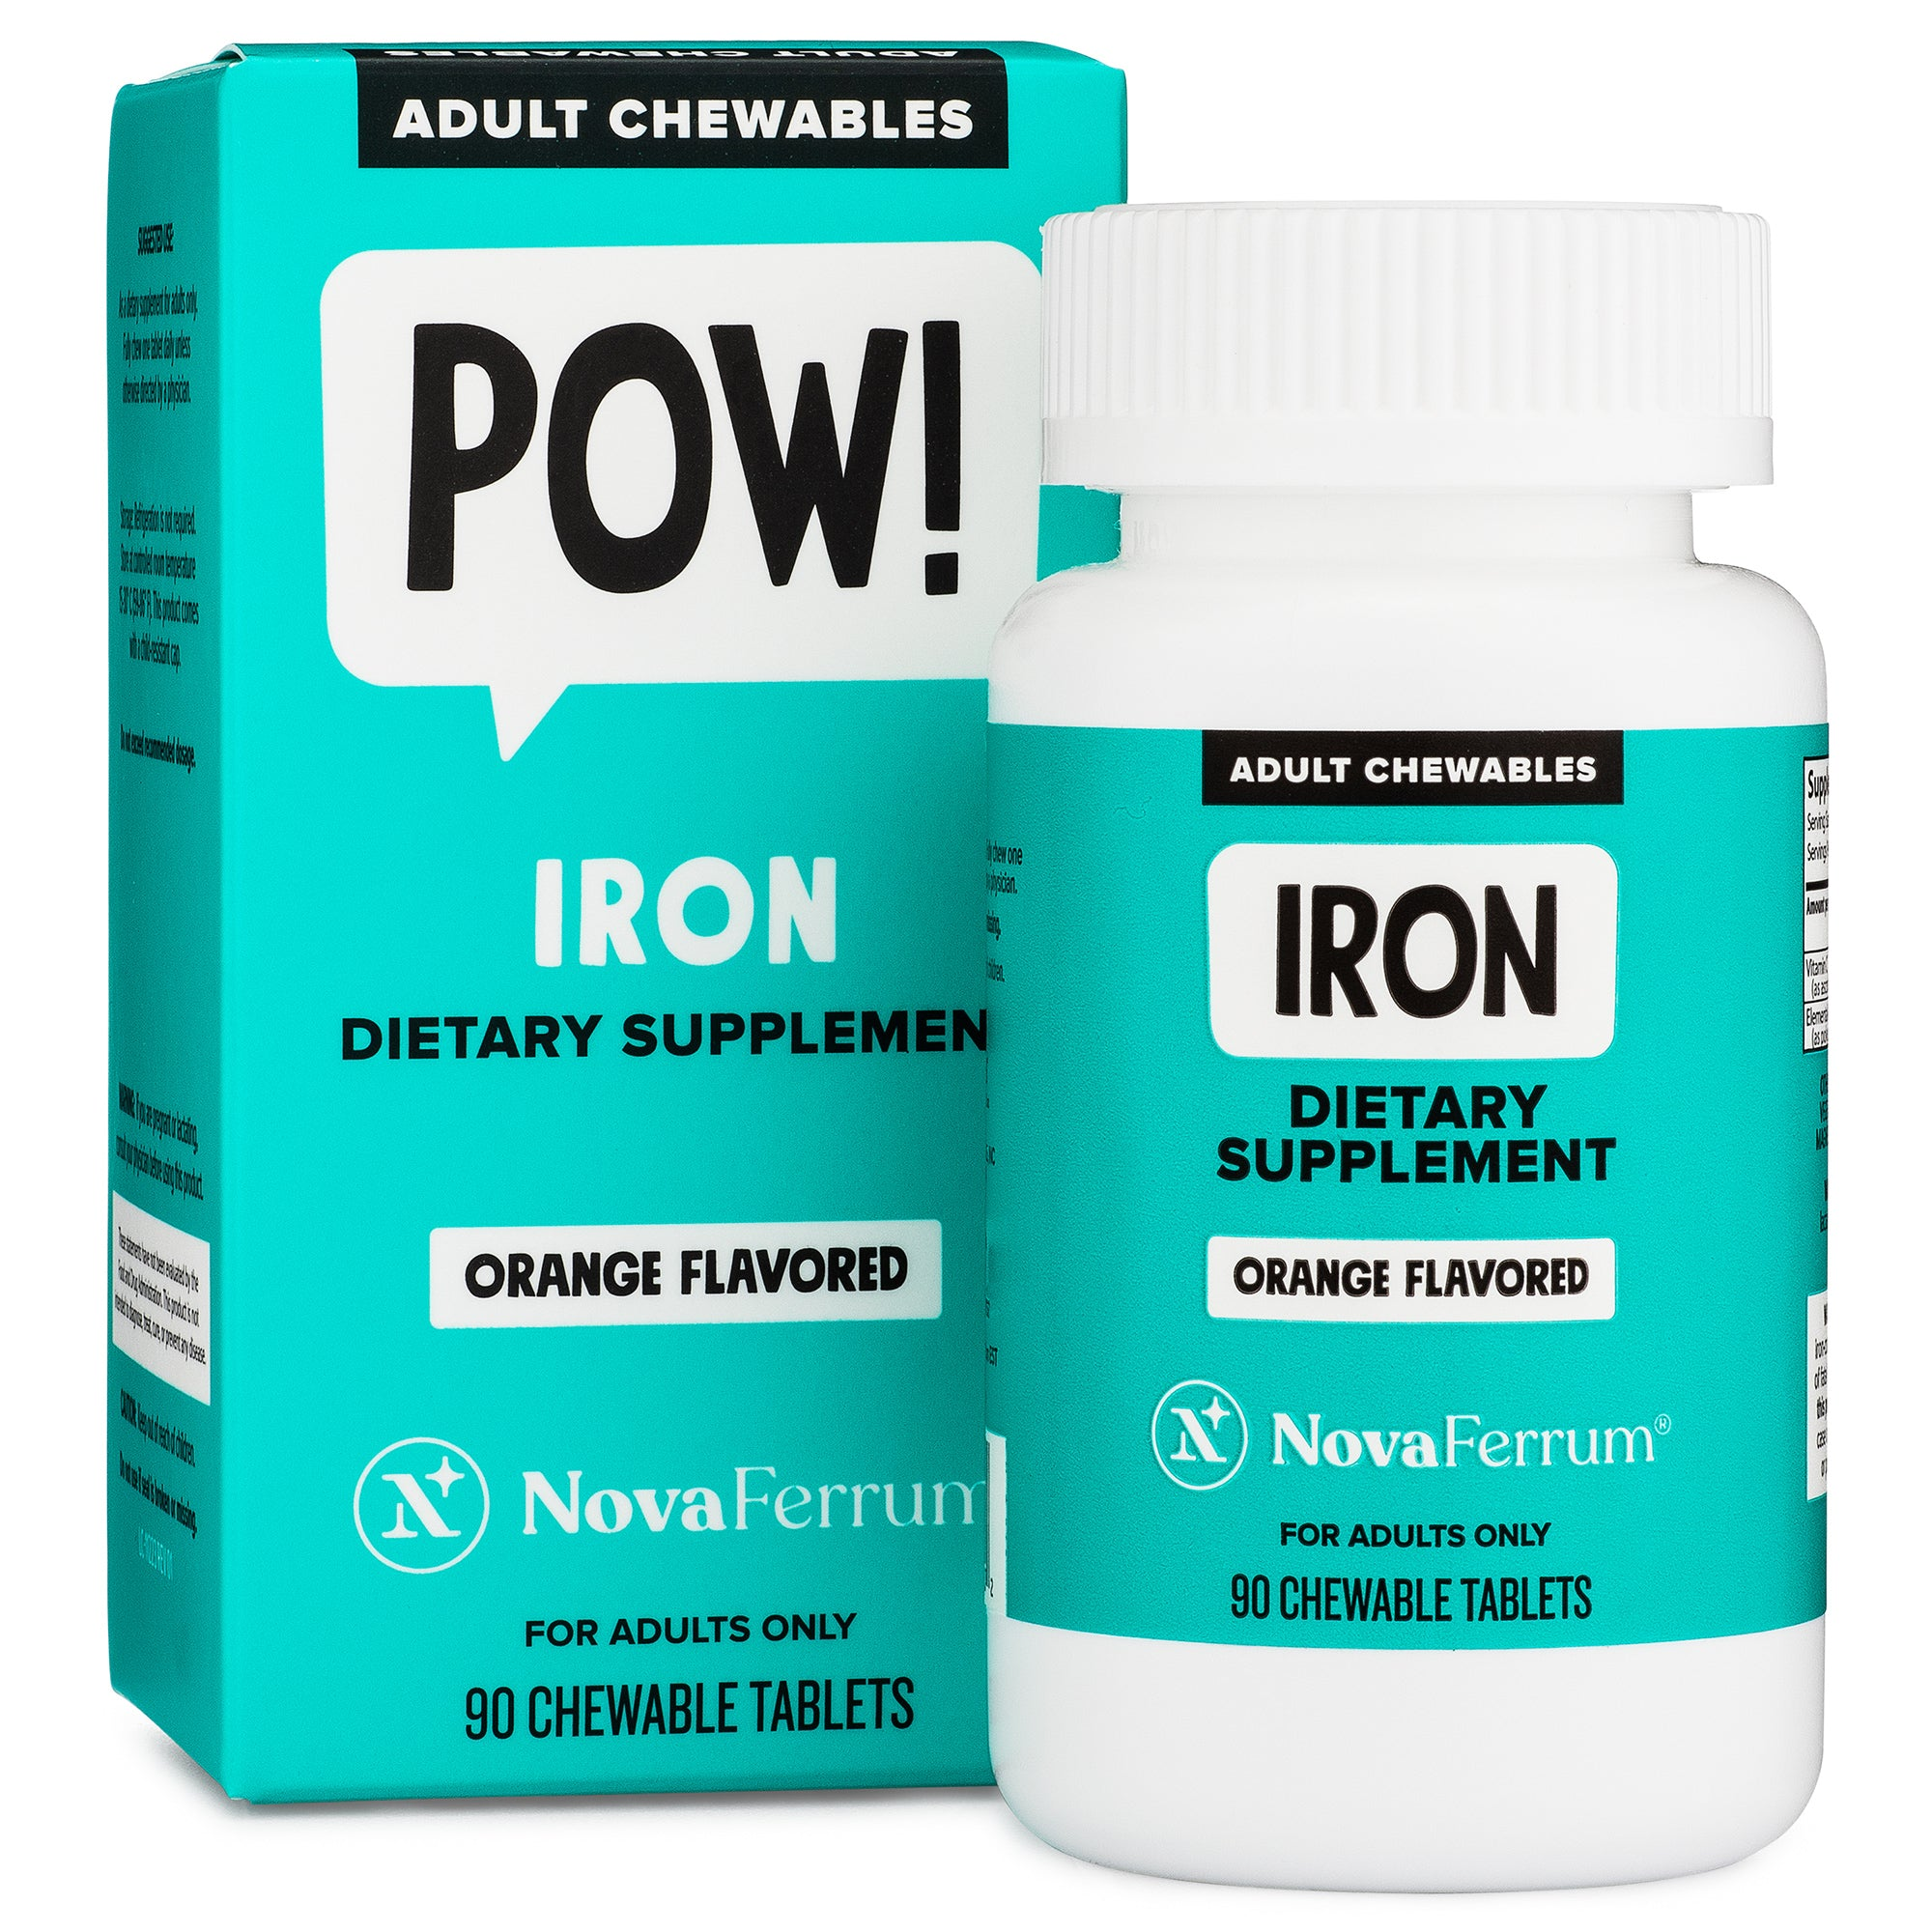 NovaFerrum Chewable Iron Supplement for Adults (90 count)